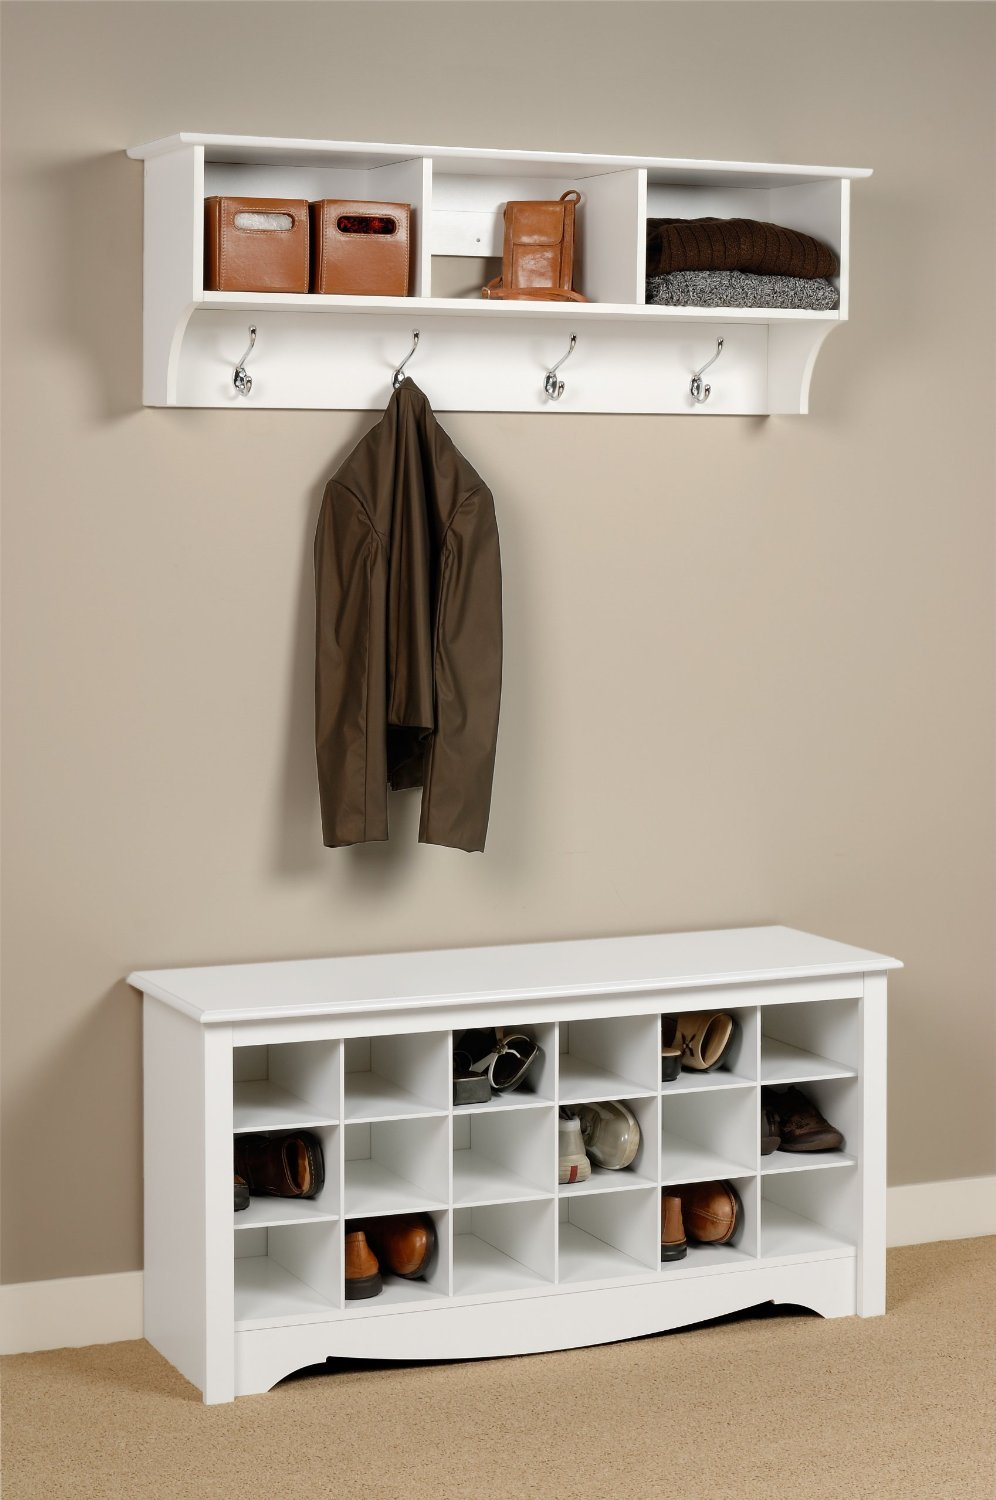 entryway benches with storage organizing | Wood Entryway Shoe Storage organizer bench Hallway Bedroom ...